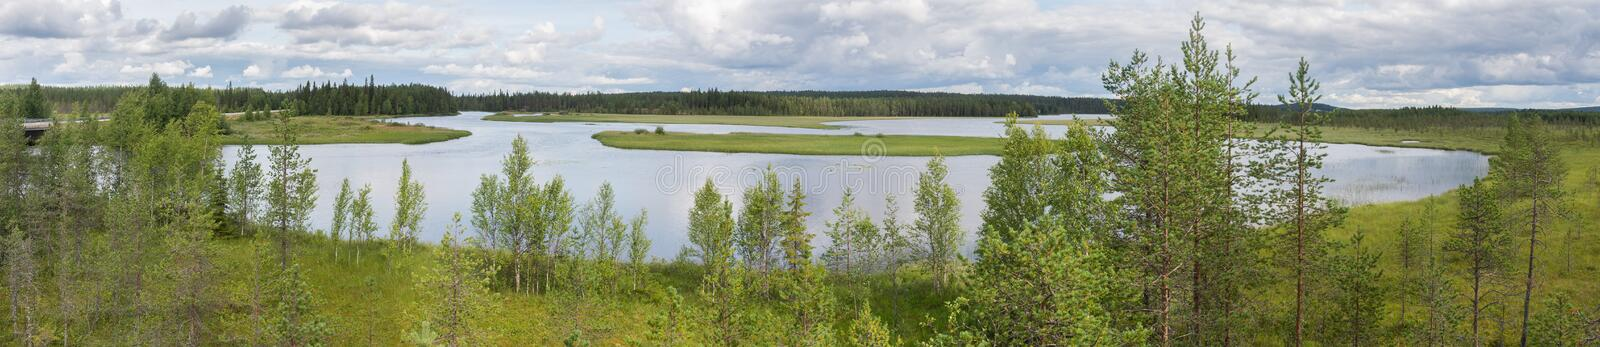 Characteristic landscape of the tundra, lake and vegetation, Fin. Typical landscape of the tundra, lake and vegetation, Finland royalty free stock photo